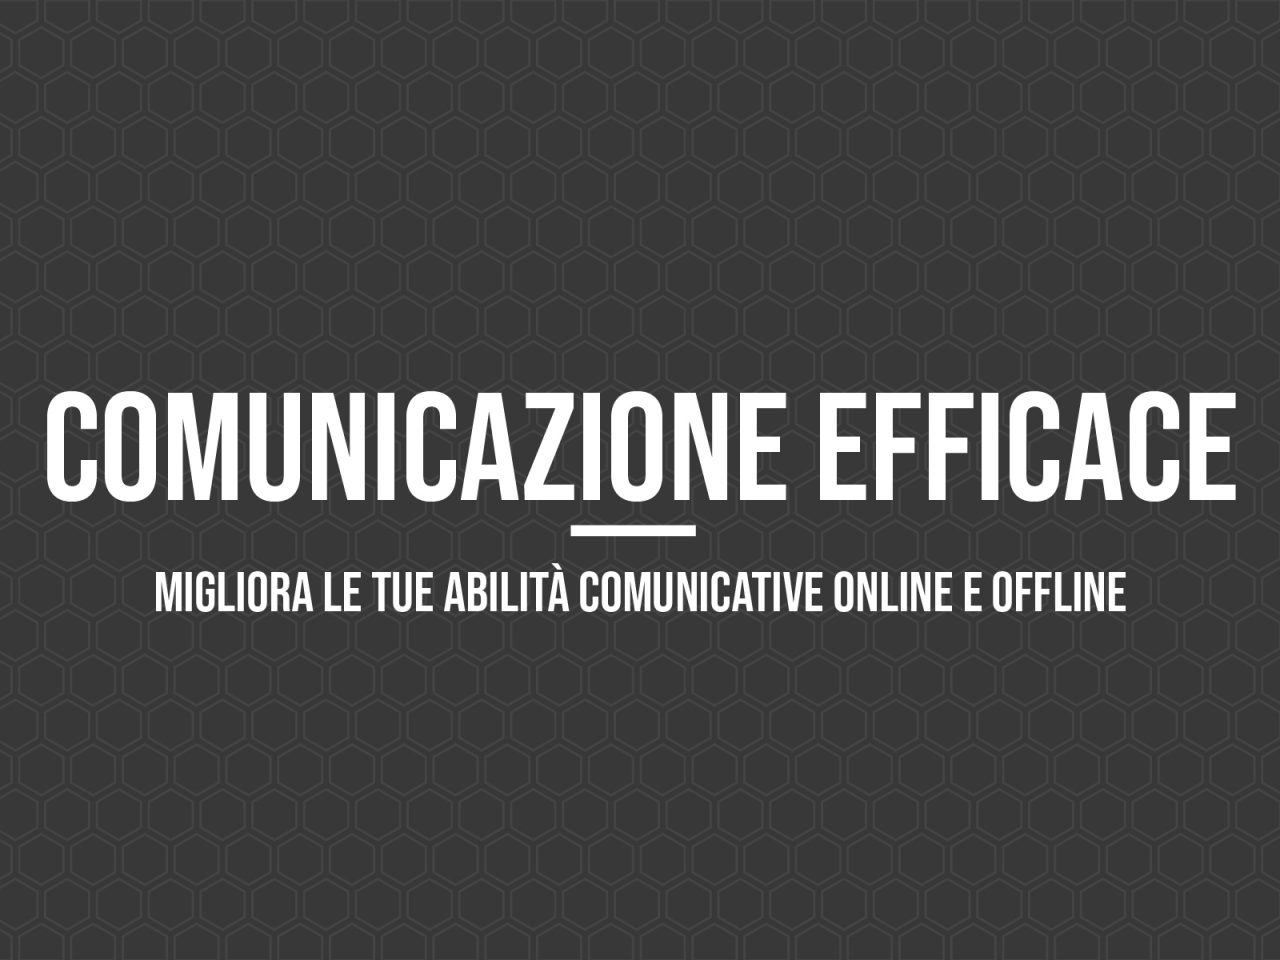 https://ram-consulting.org/wp-content/uploads/2021/01/comunicazione-efficace-1280x960.jpg